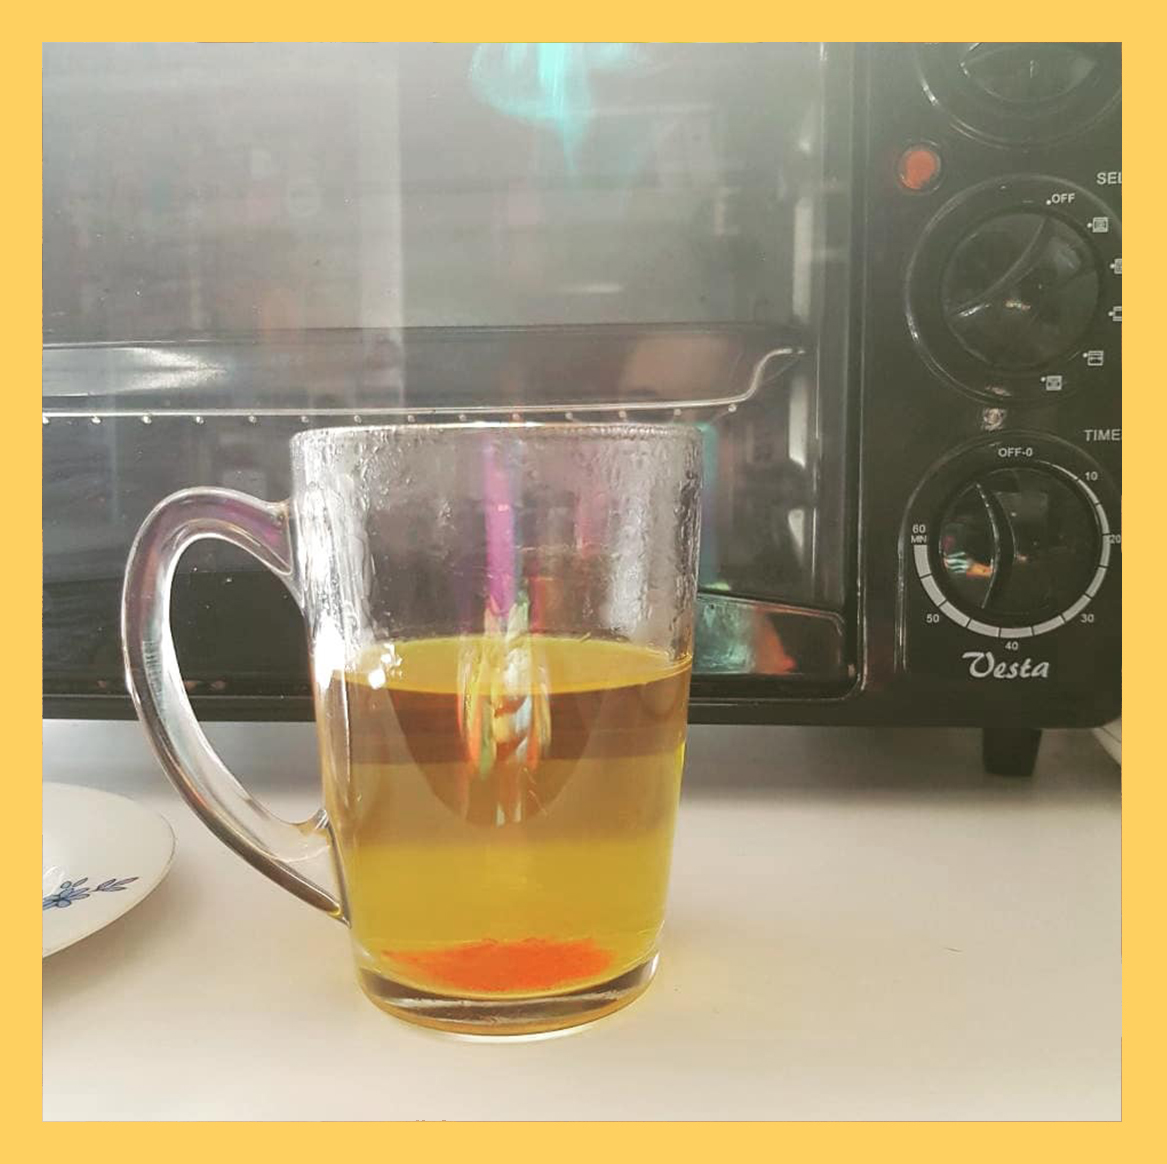 Saffron and boiled water, زعفران و آب جوش